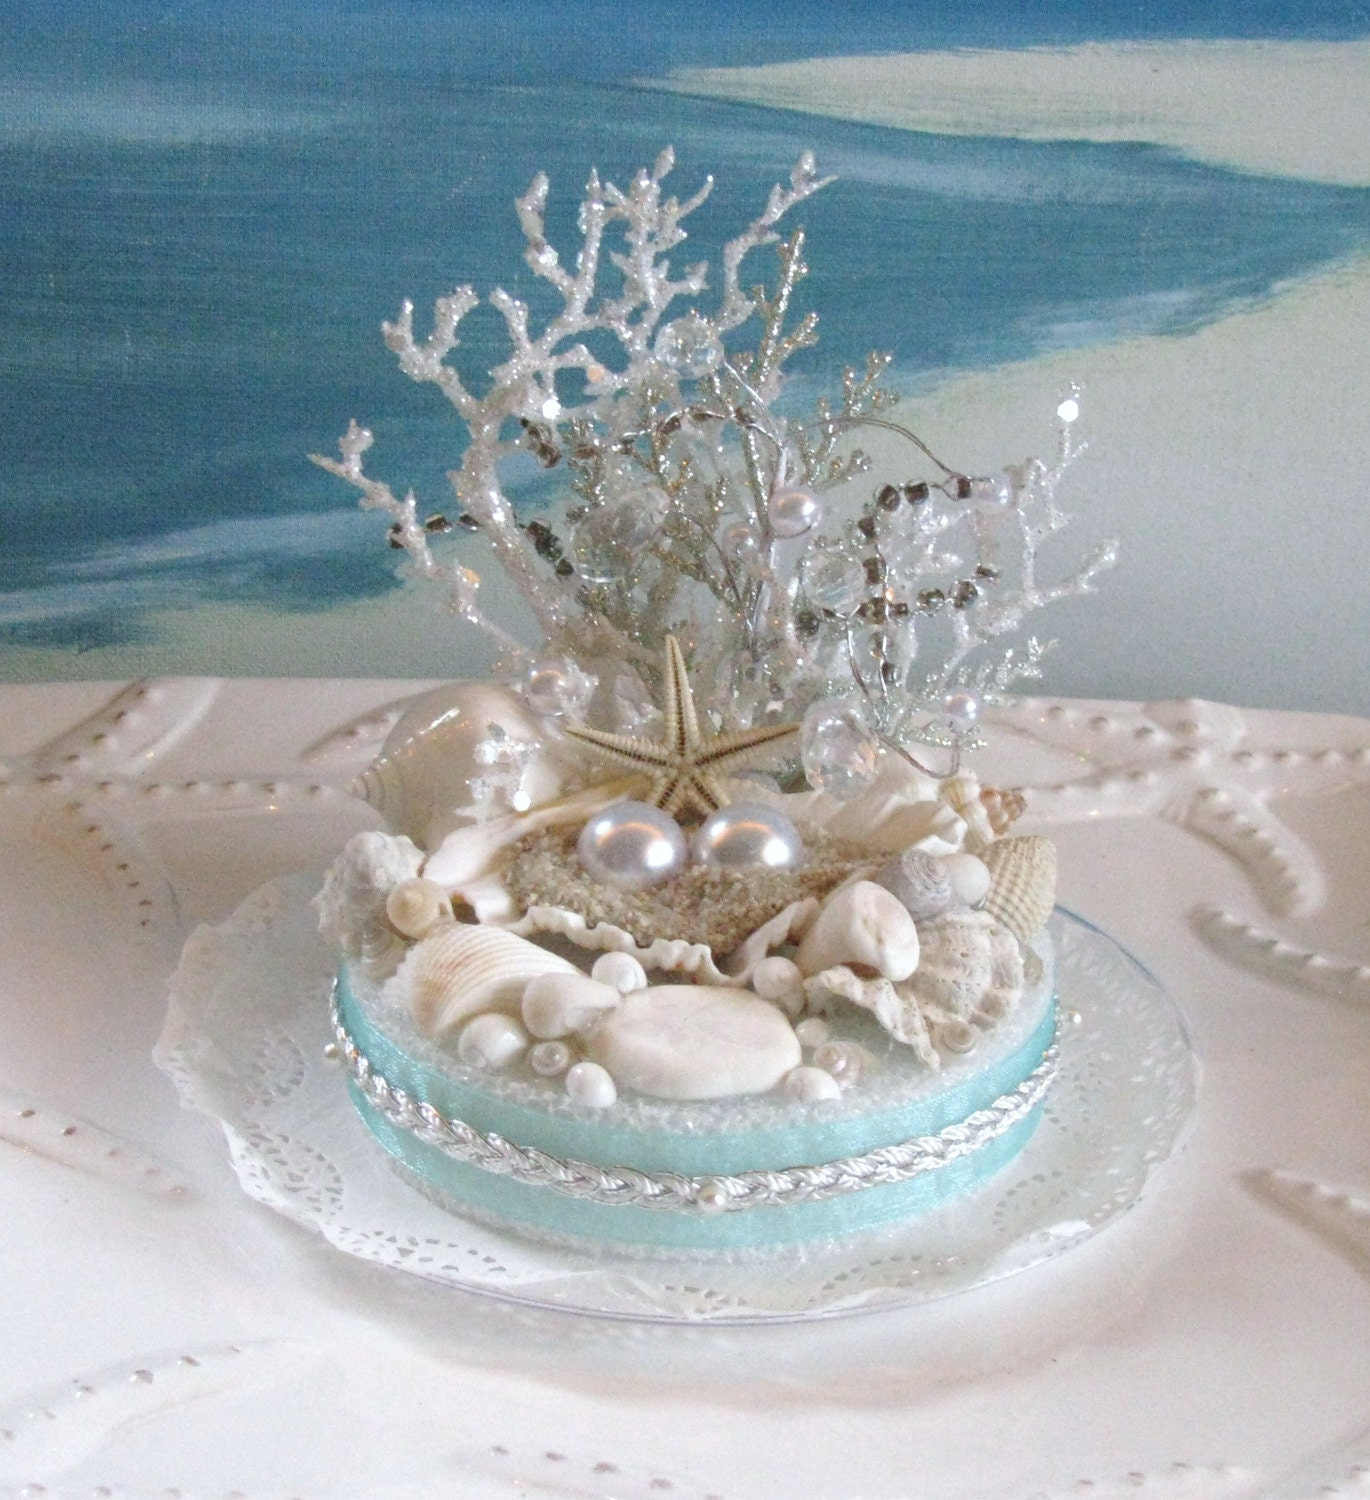 seashell beach wedding cake topper pearl coral wedding cake. Black Bedroom Furniture Sets. Home Design Ideas